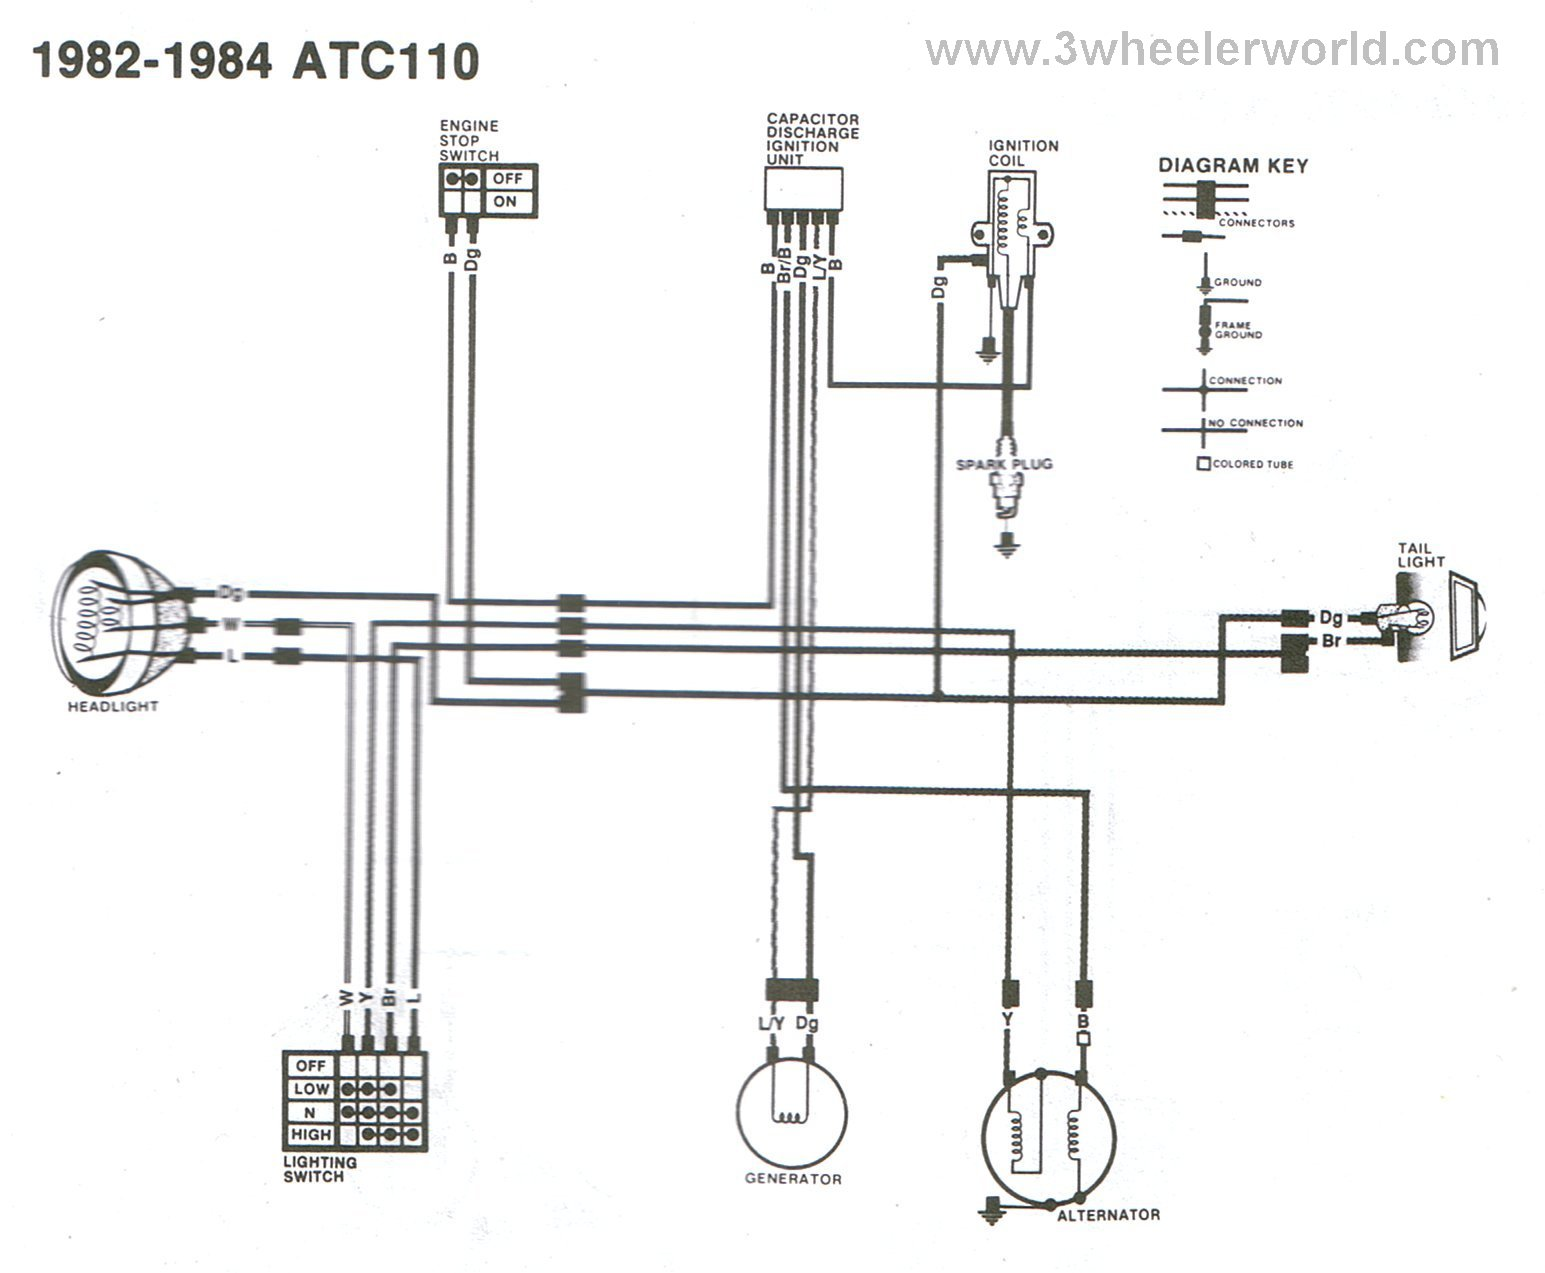 Sunl 150 Atv Wiring Diagram 110Cc 4 Wheeler Wiring Diagram